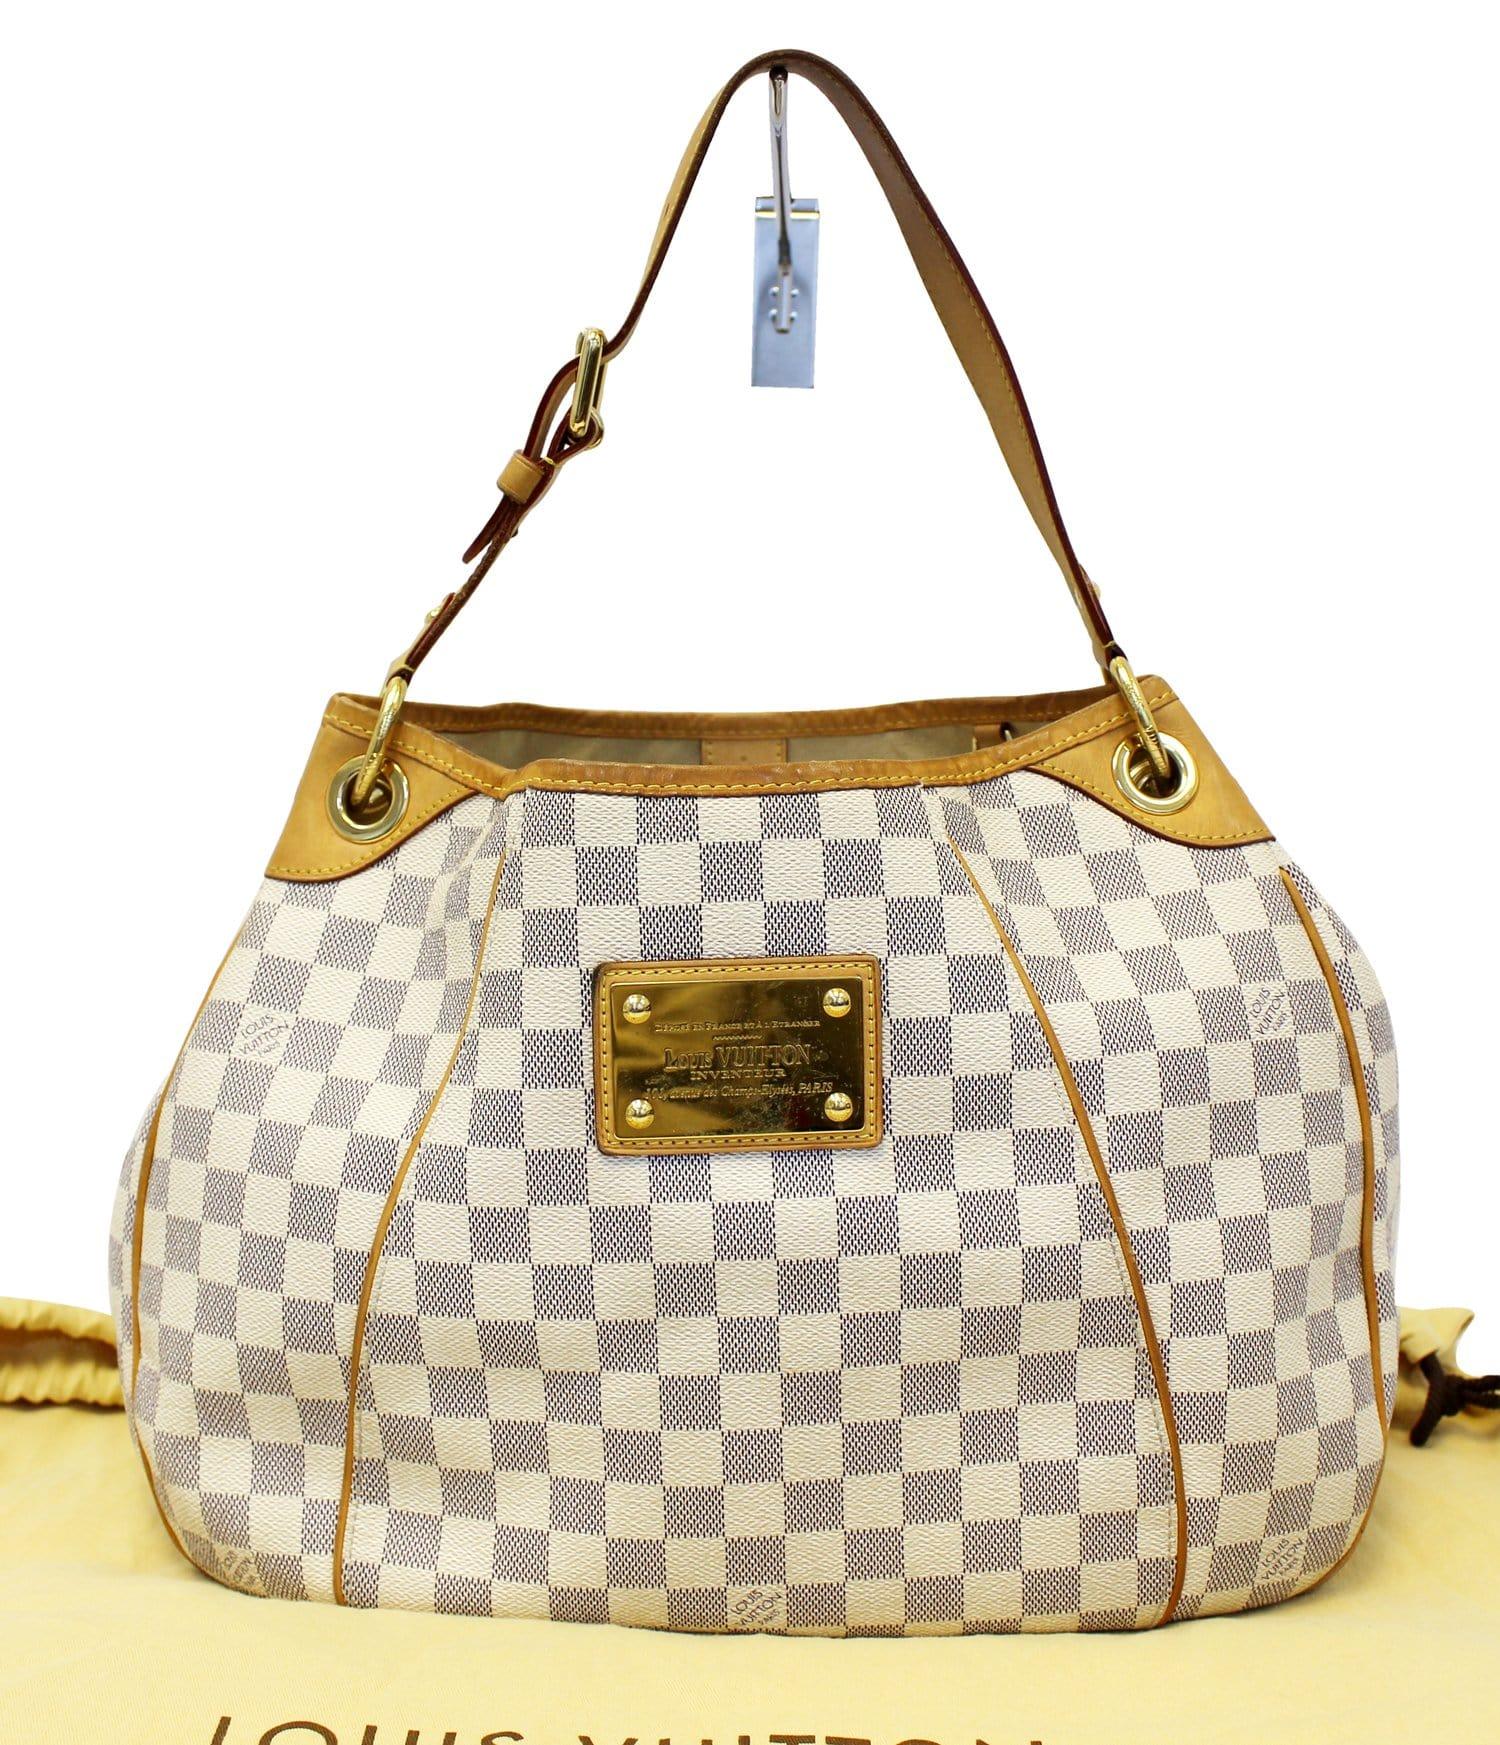 827120b7f0fc6 LOUIS VUITTON Damier Azur Galliera PM Shoulder Bag - 30% Off ...